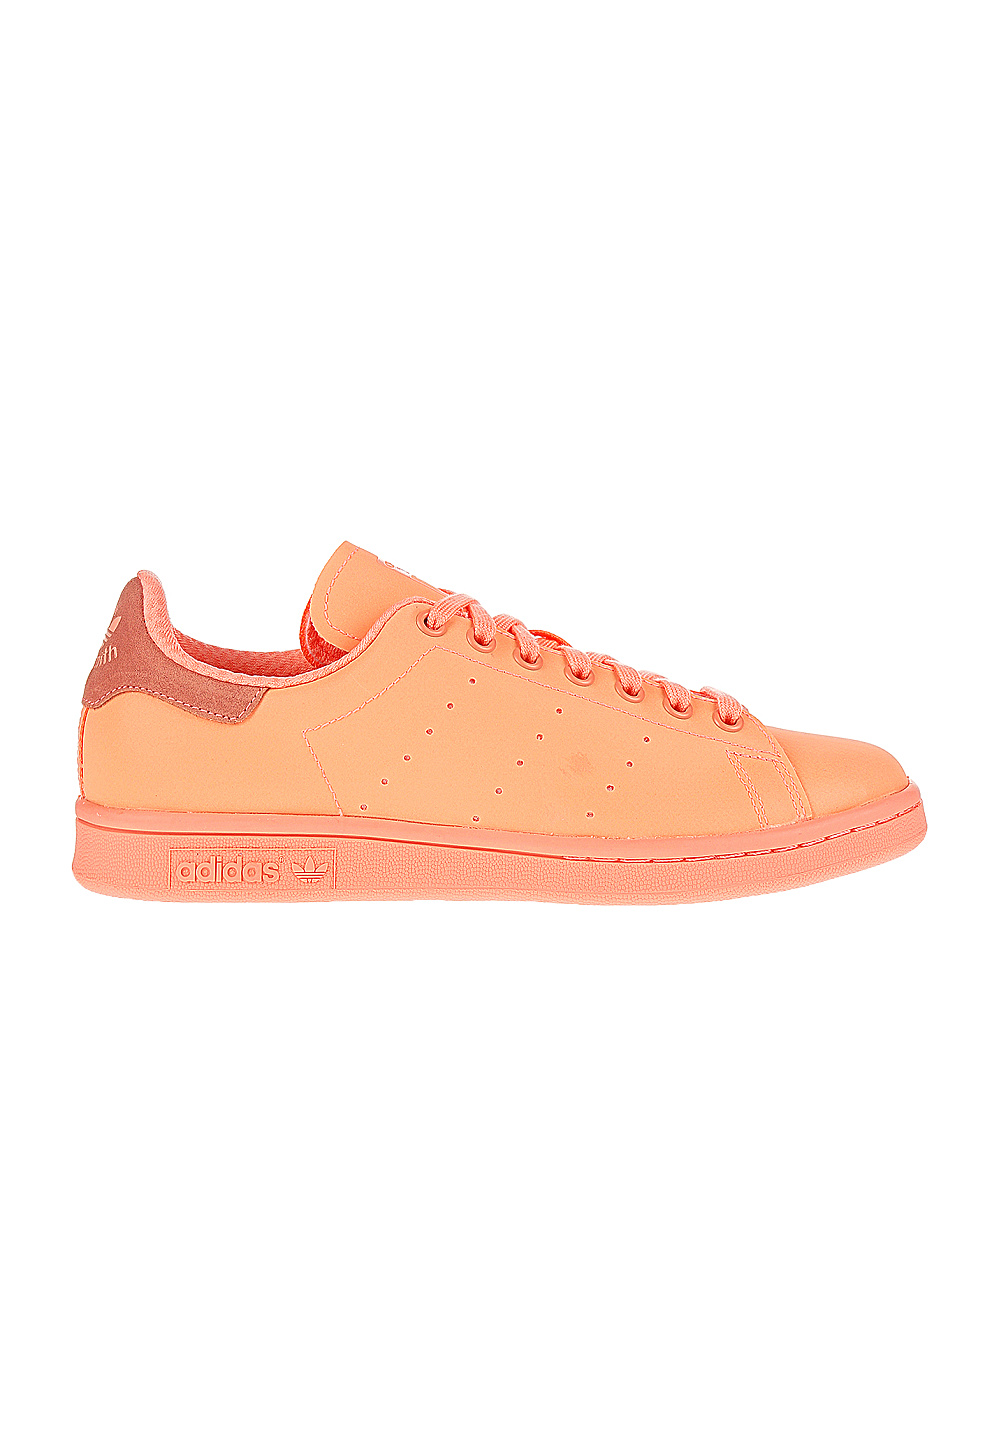 adidas stan smith adicolor sneakers for women orange planet sports. Black Bedroom Furniture Sets. Home Design Ideas